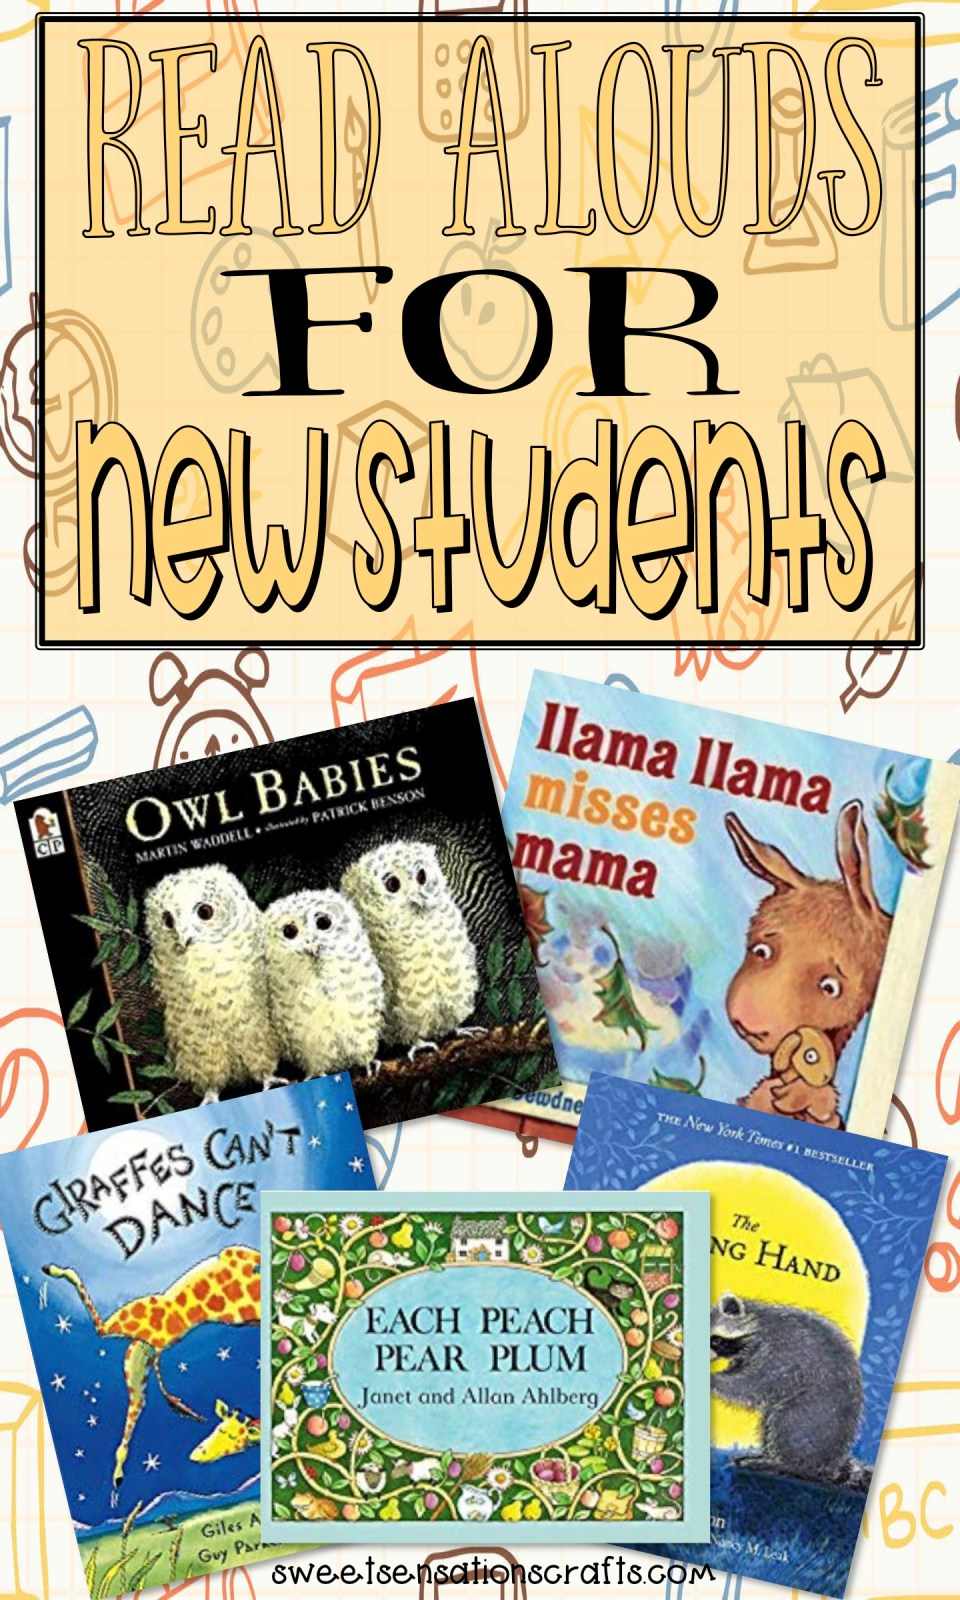 Read alouds for beginning kindergarten